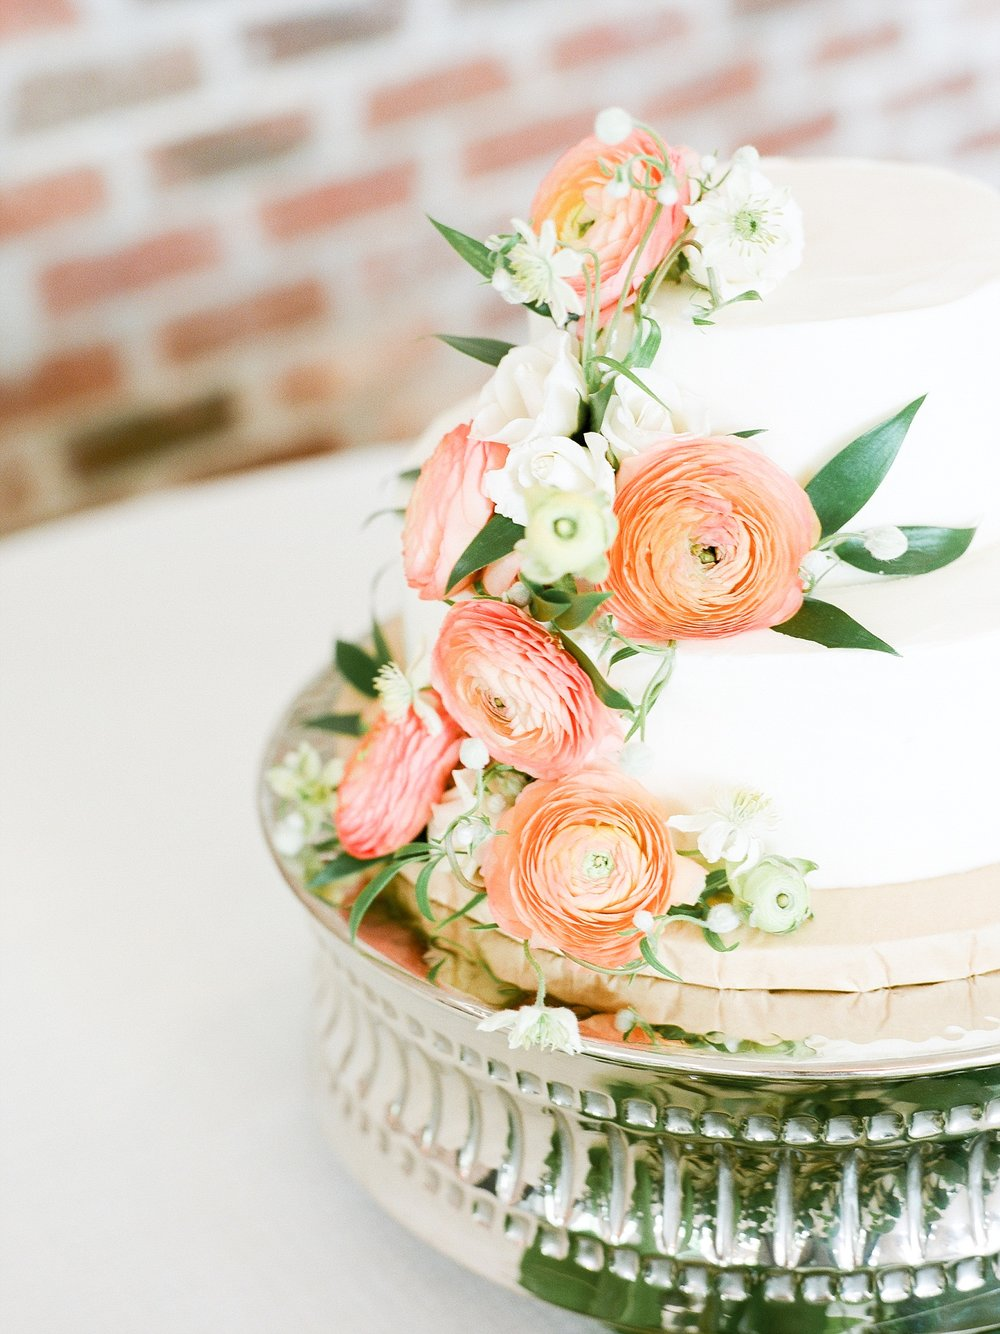 Textural Organic Wedding in All White Venue by Kelsi Kliethermes Wedding Photographer - Missouri, Midwest, and Destinations_0119.jpg